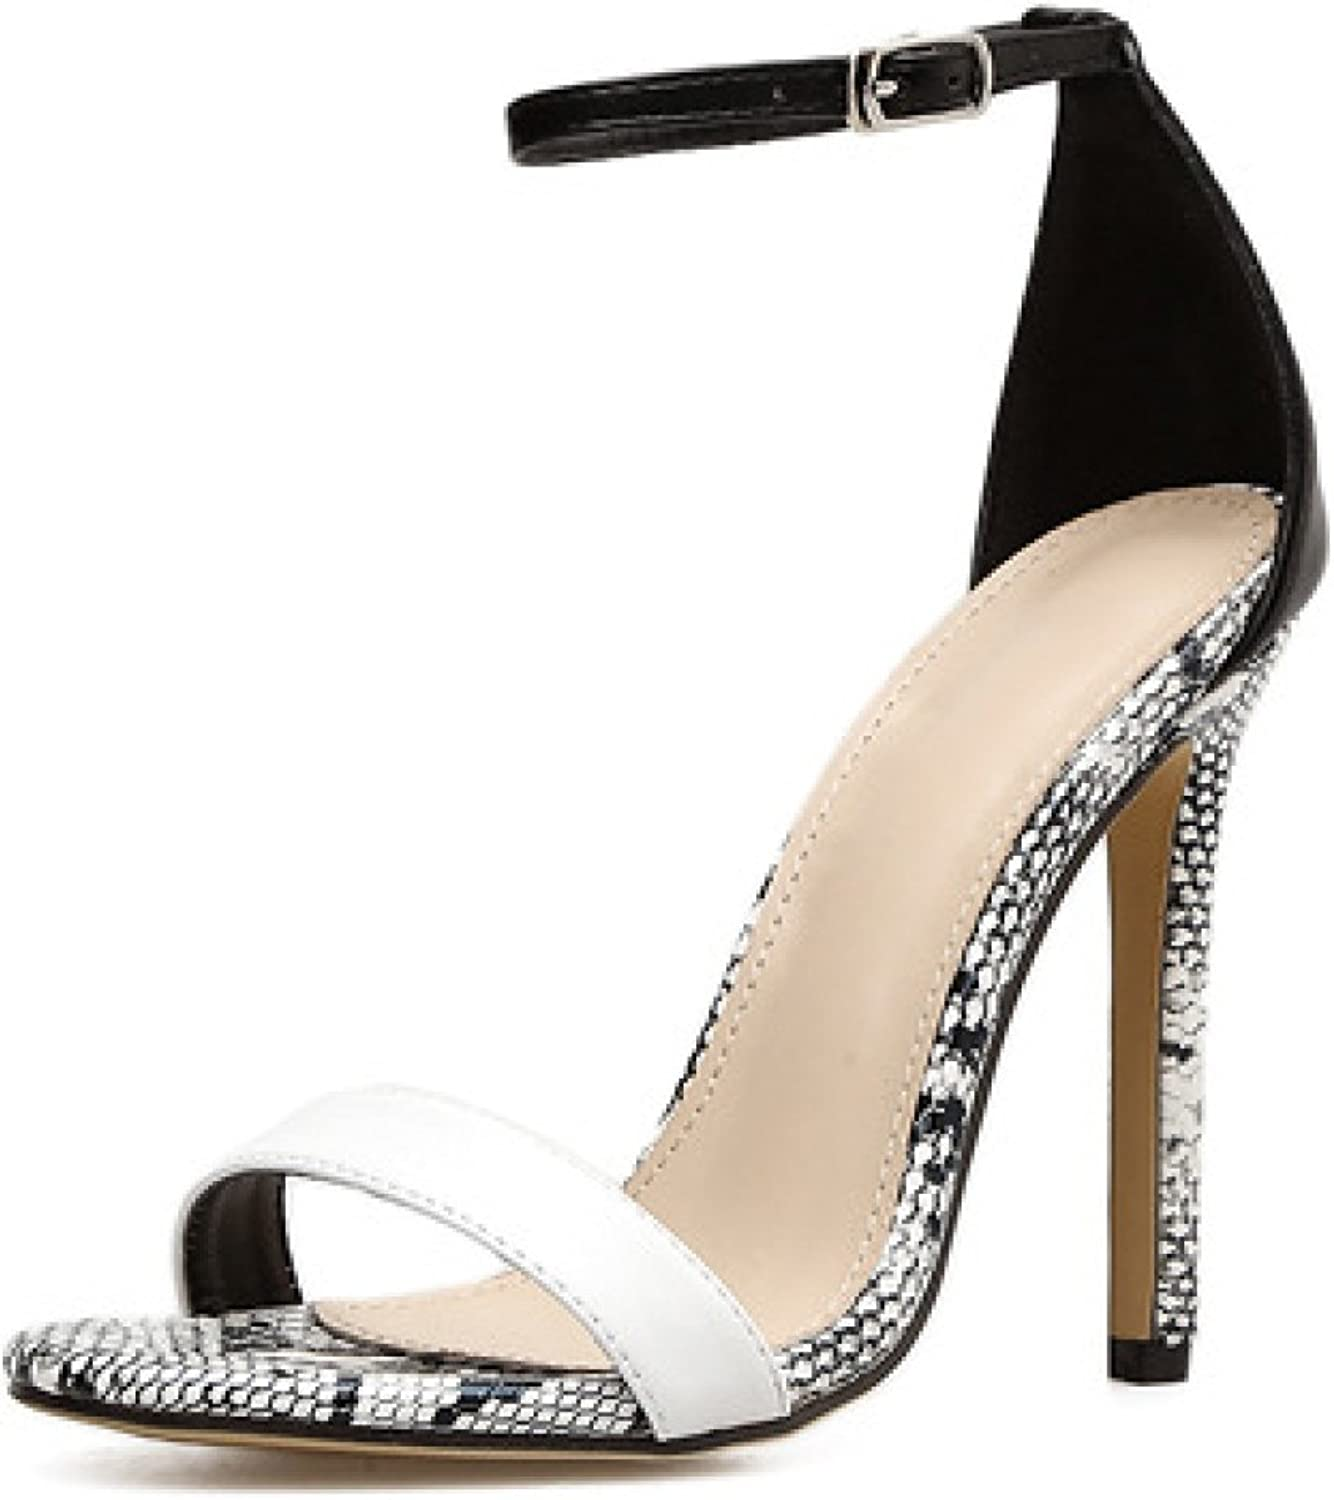 Women's High Heel Ankle Strap Barely There Pump Stiletto Sexy Dress Party shoes,Black-EU 35=5.5B(M) US